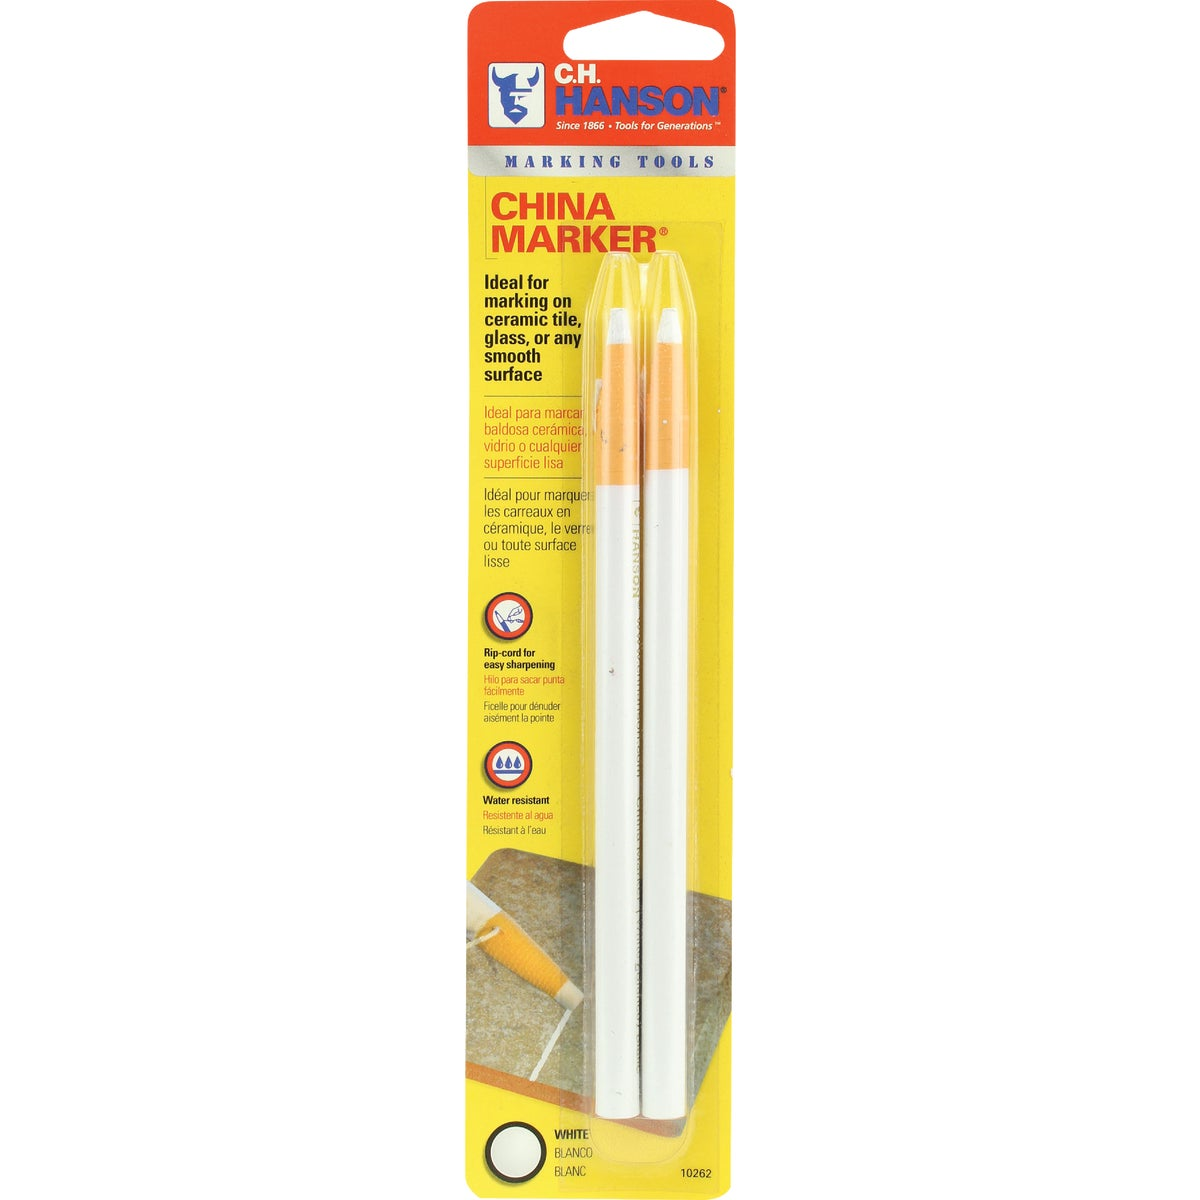 2PK WHITE CHINA MARKER - 1779835 by Irwin Industr Tool